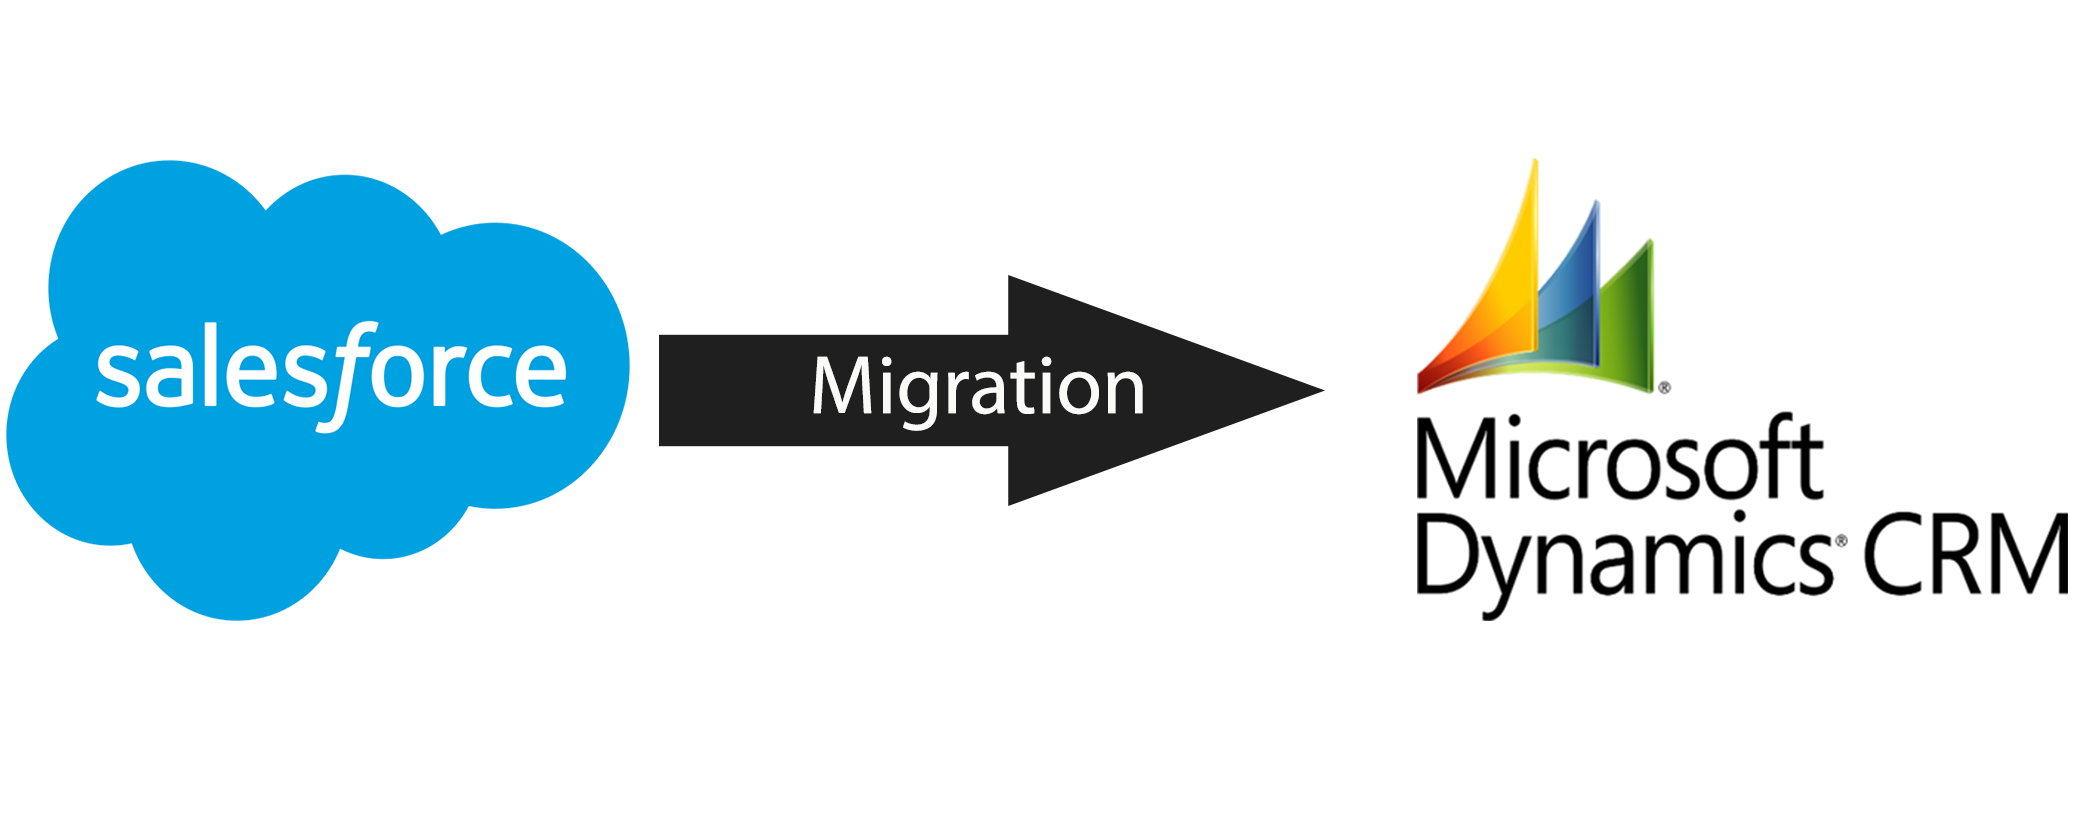 Migration from Salesforce to Dynamics CRM